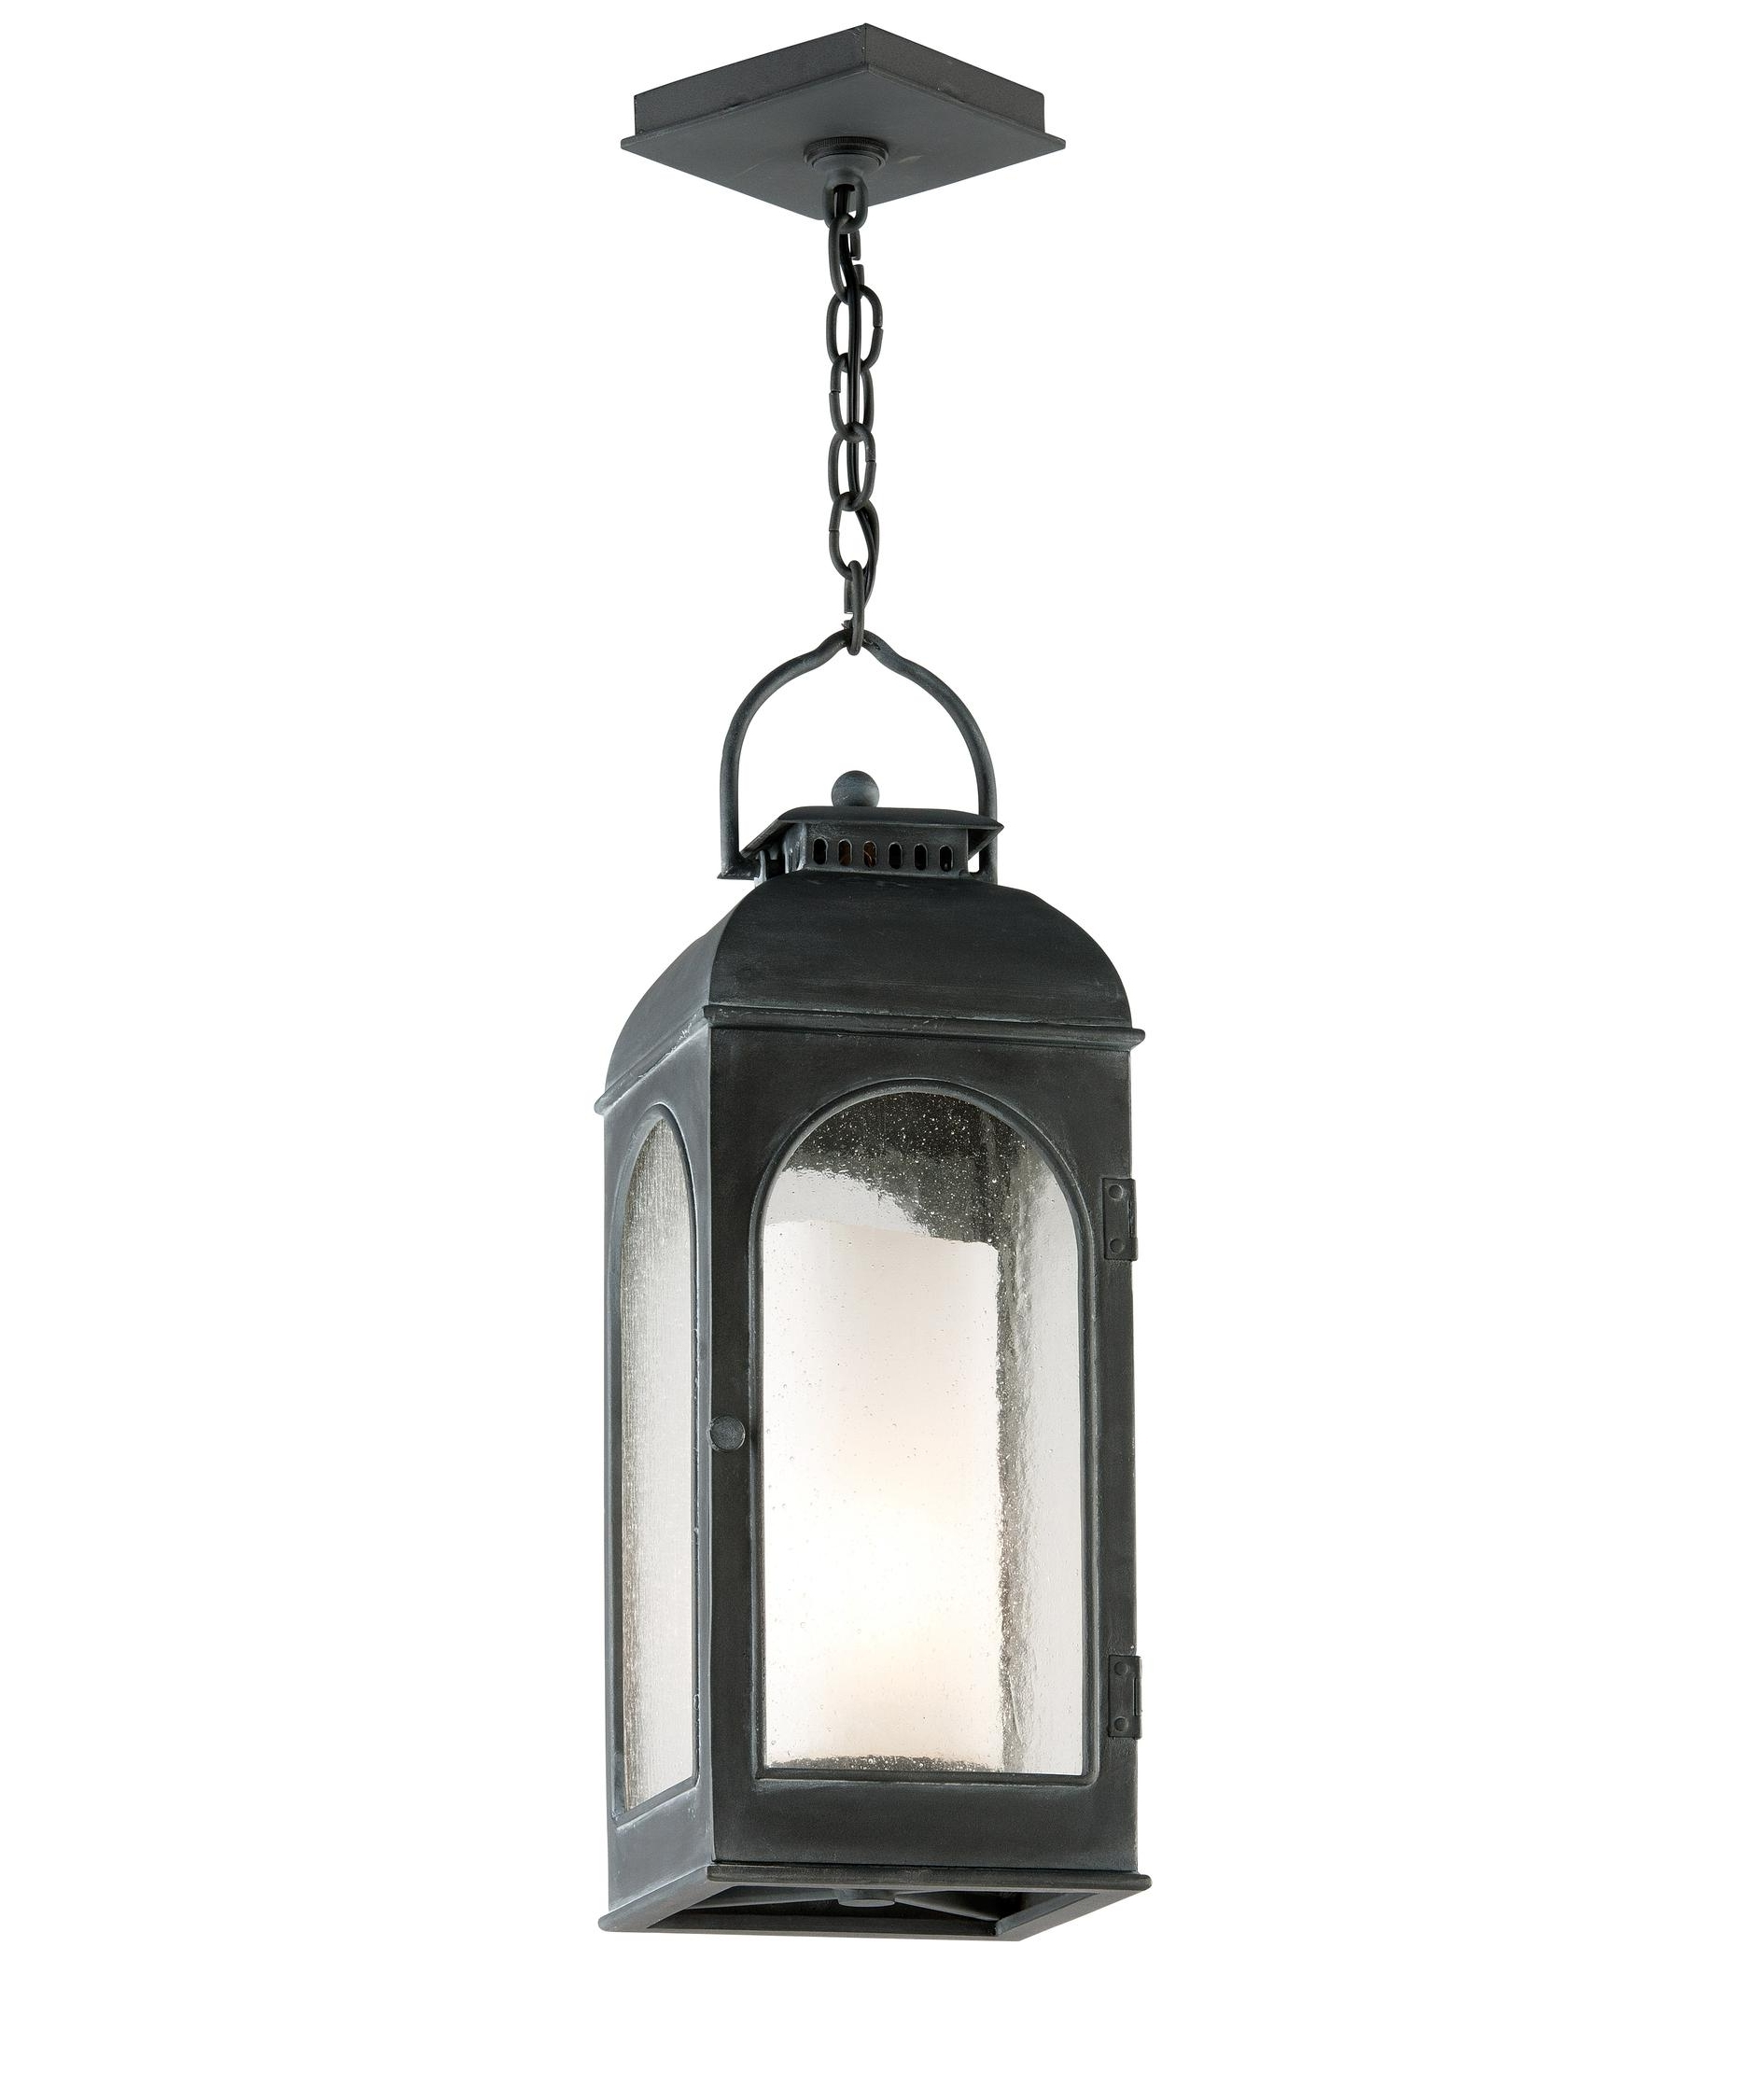 Popular Troy Lighting F3287 Derby 8 Inch Wide 1 Light Outdoor Hanging Regarding Outdoor Hanging Lanterns Candles (View 2 of 20)